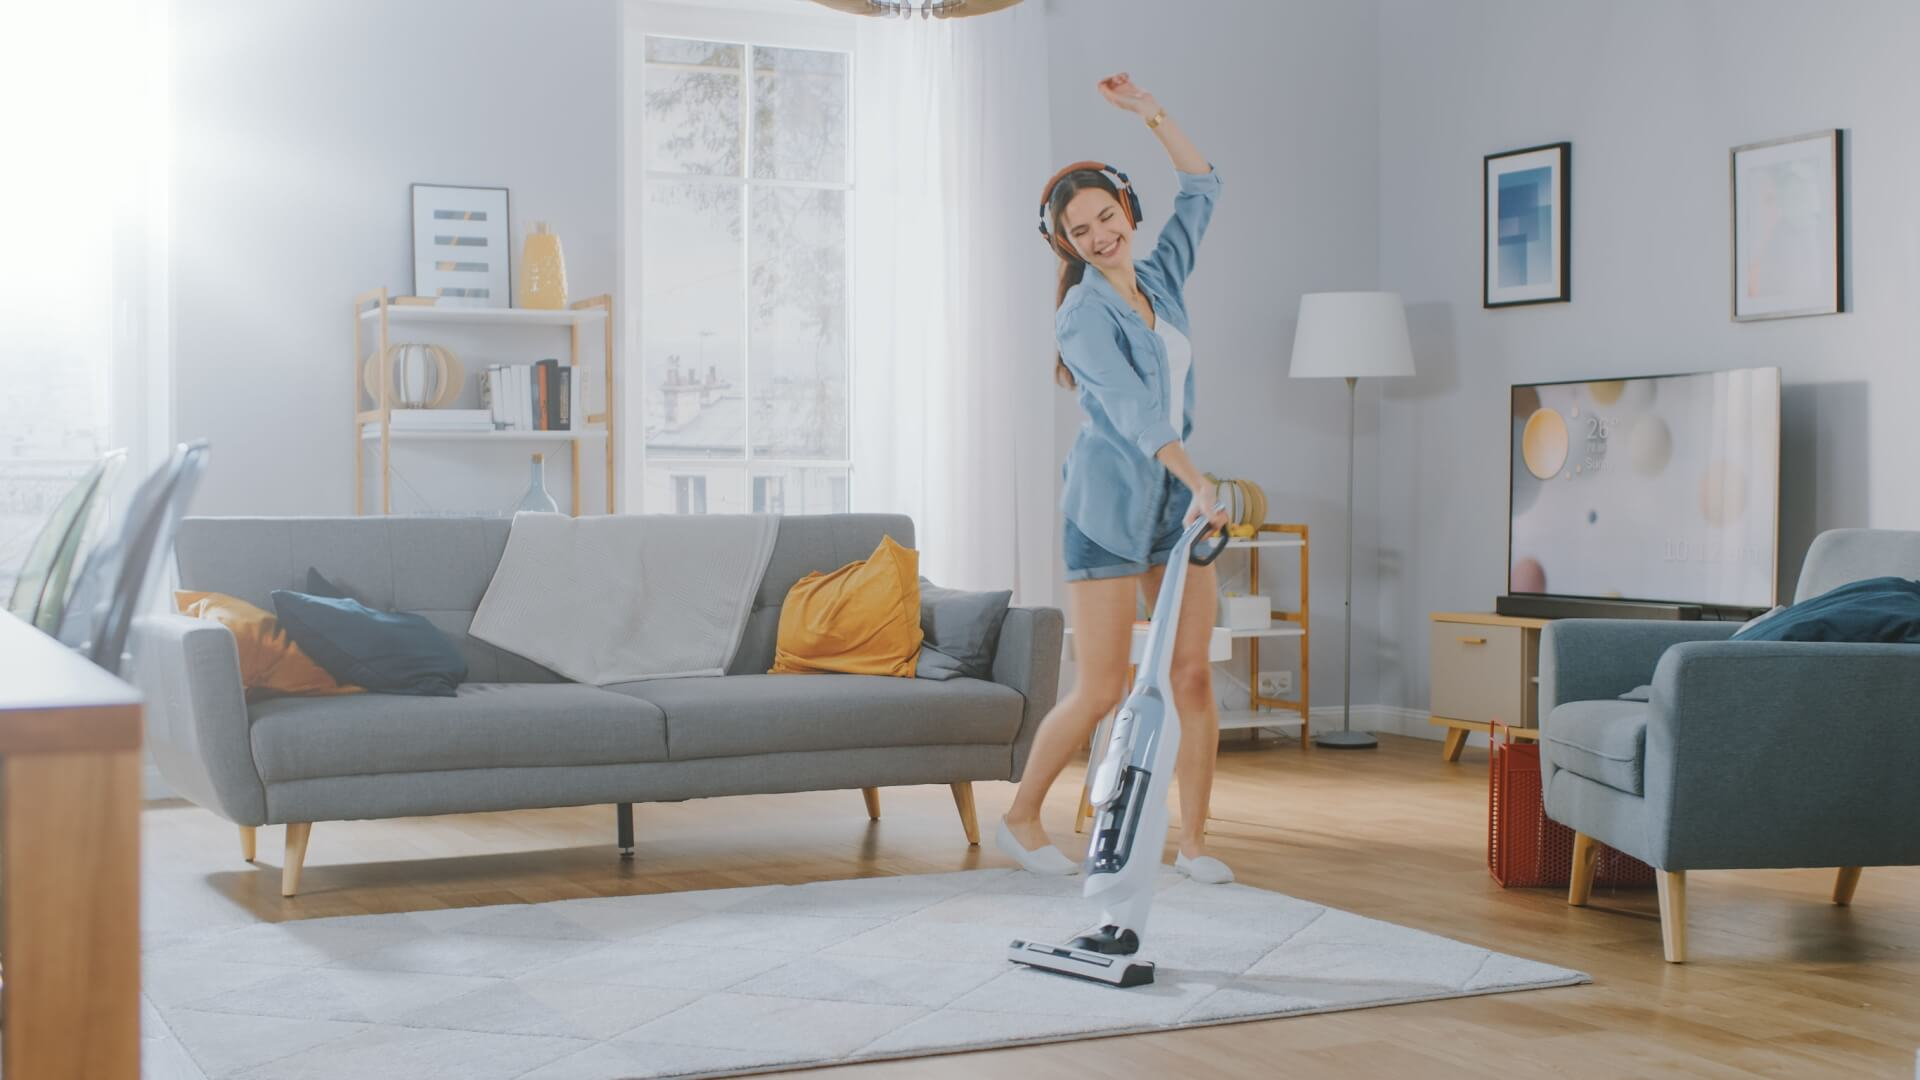 A Beautiful Woman is Cleaning a Carpet in a Cozy Room. She Uses a professional Vacuum.